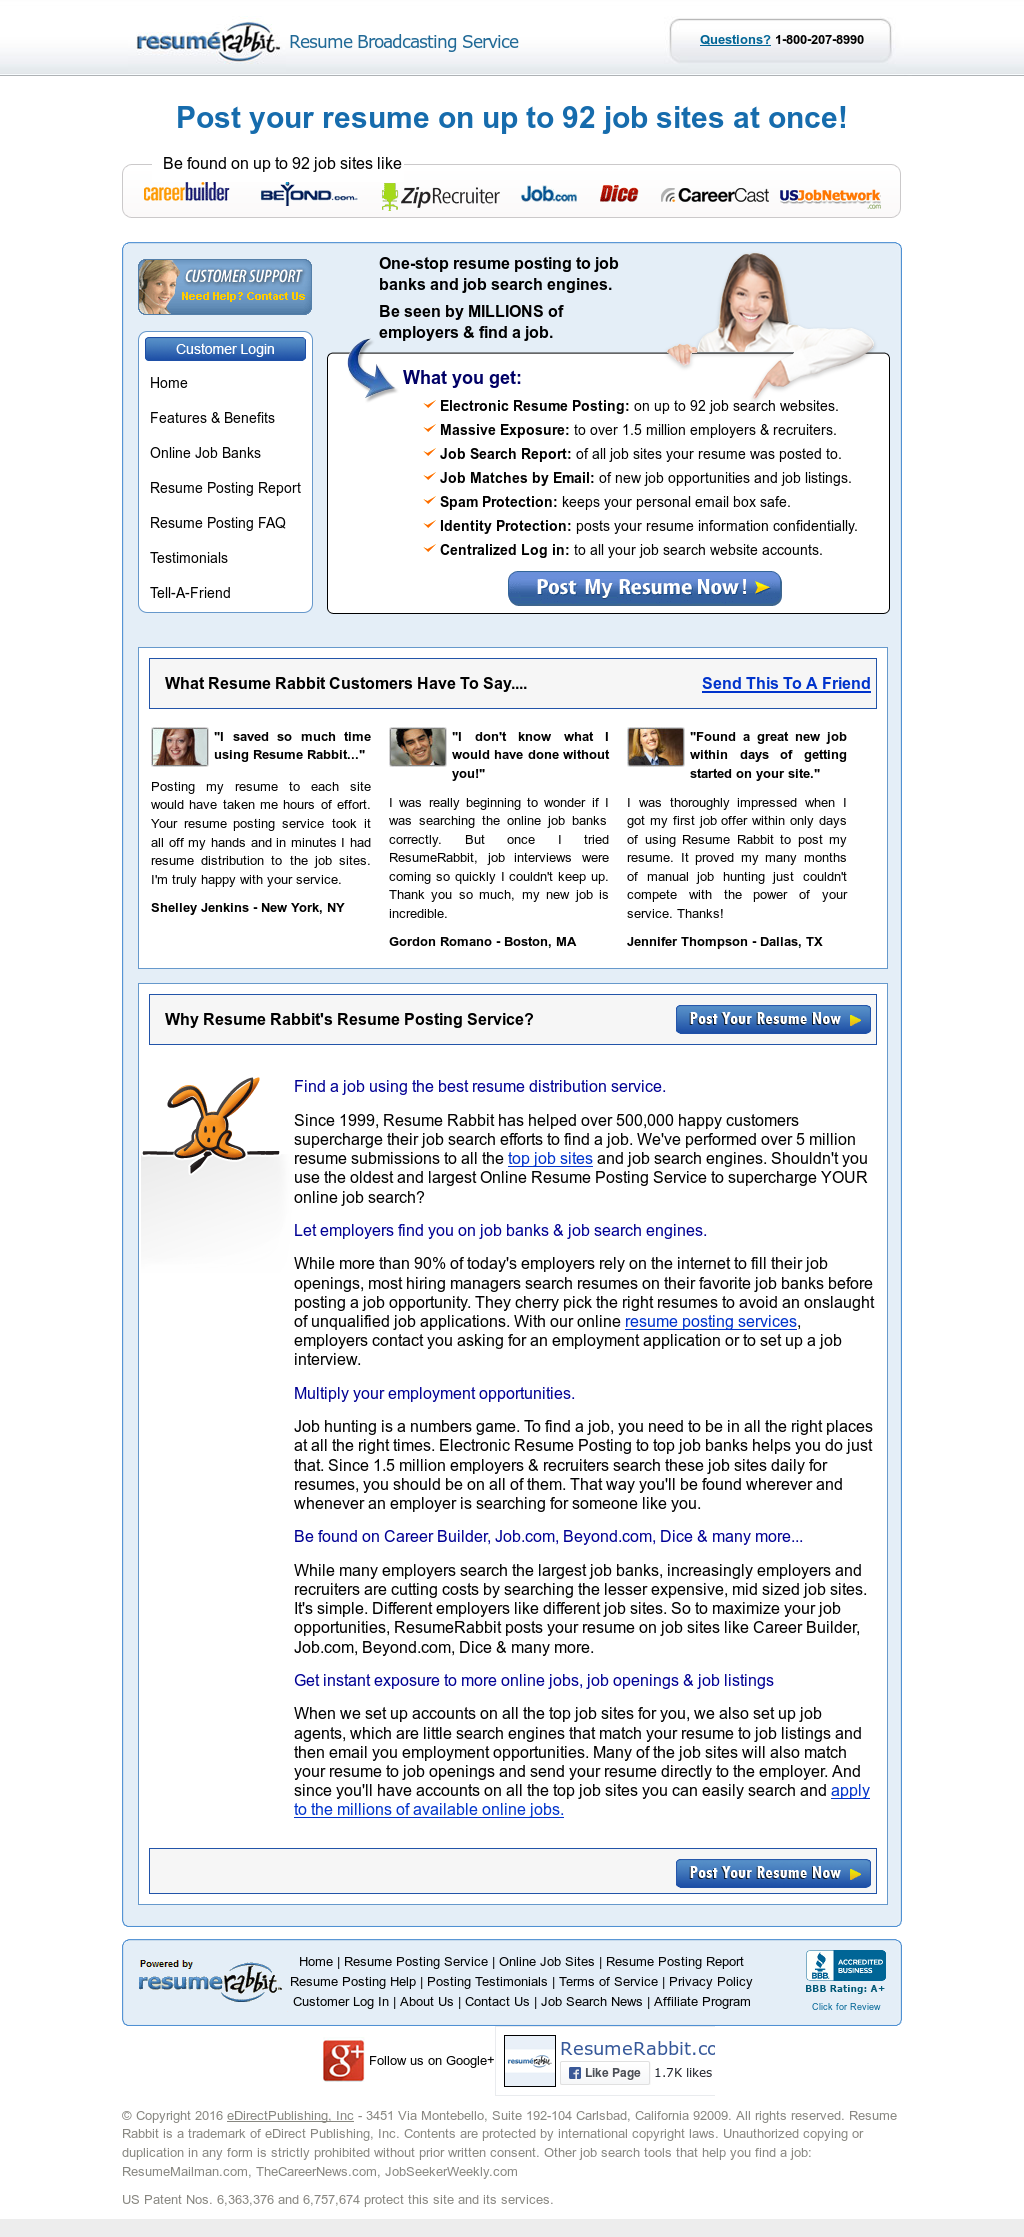 Resume Rabbit Competitors, Revenue and Employees - Owler Company Profile